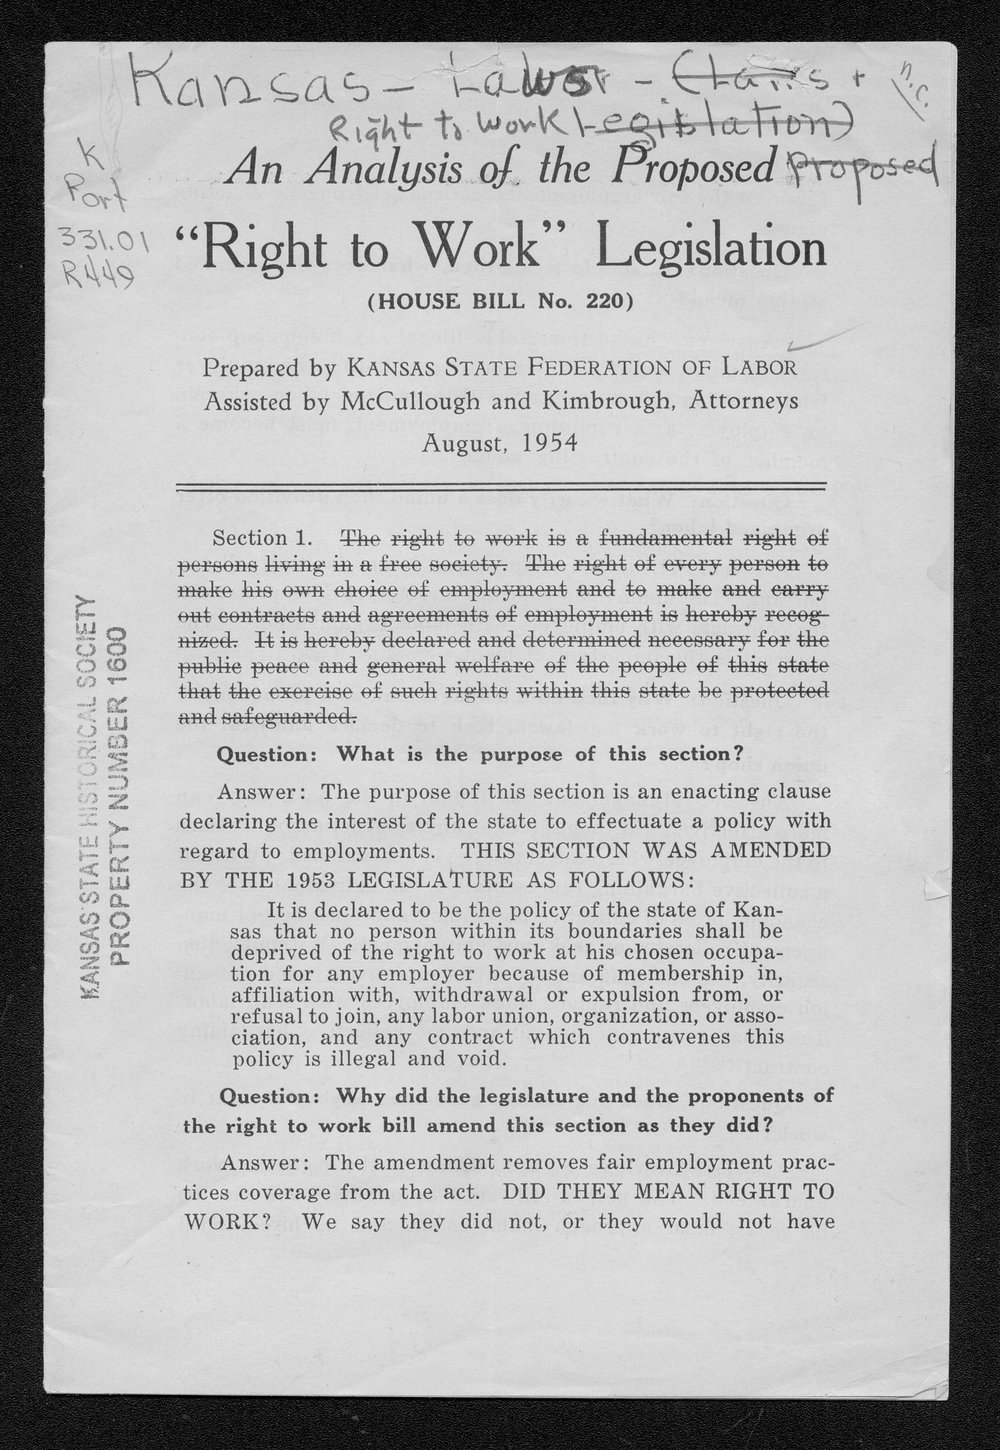 An analysis of the proposed right-to-work legislation - 1